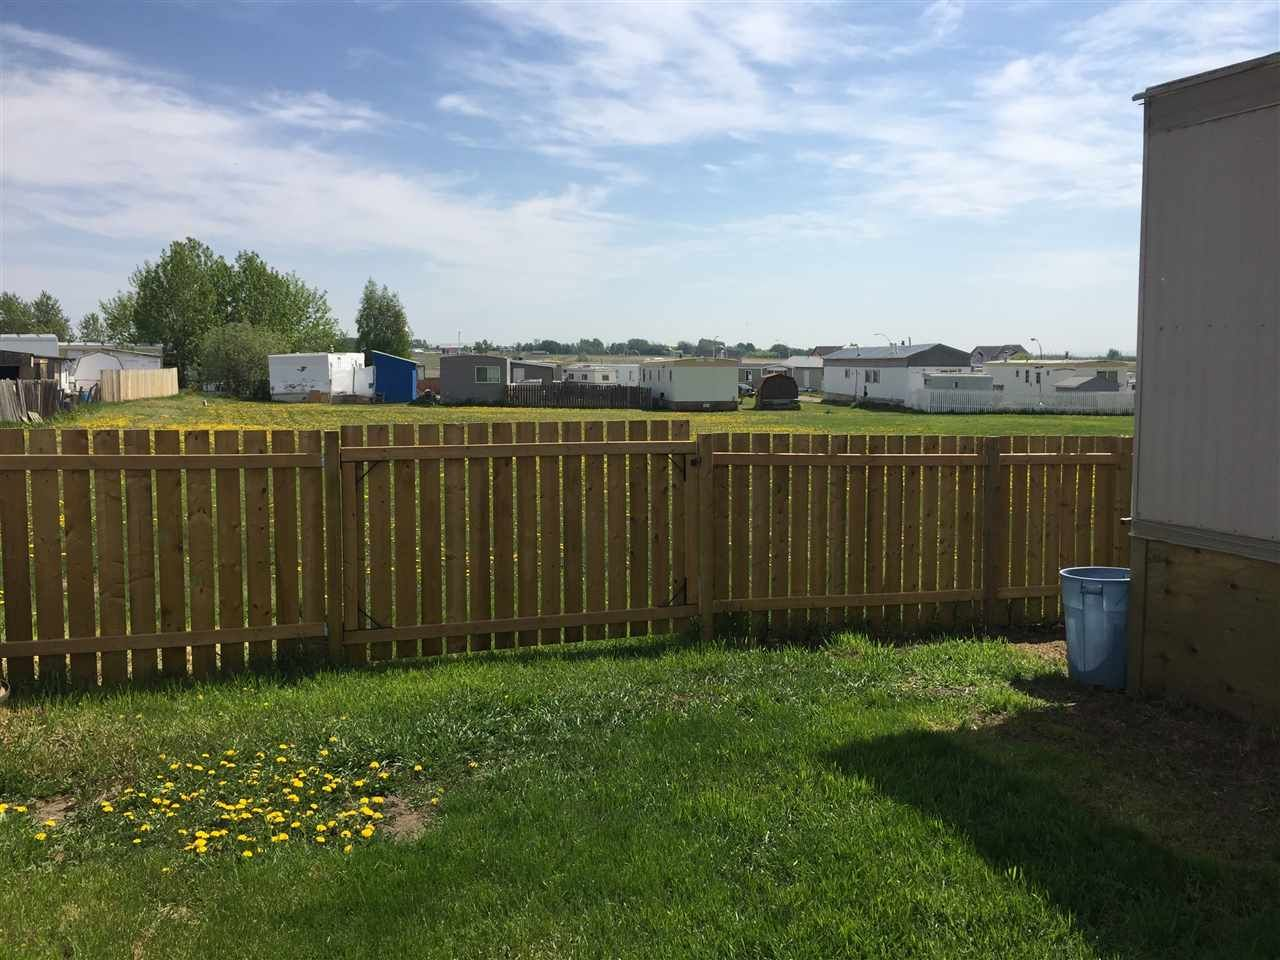 """Photo 3: Photos: 41 8420 ALASKA Road in Fort St. John: Fort St. John - City SE Manufactured Home for sale in """"PEACE COUNTRY MOBILE HOME PARK"""" (Fort St. John (Zone 60))  : MLS®# R2069792"""